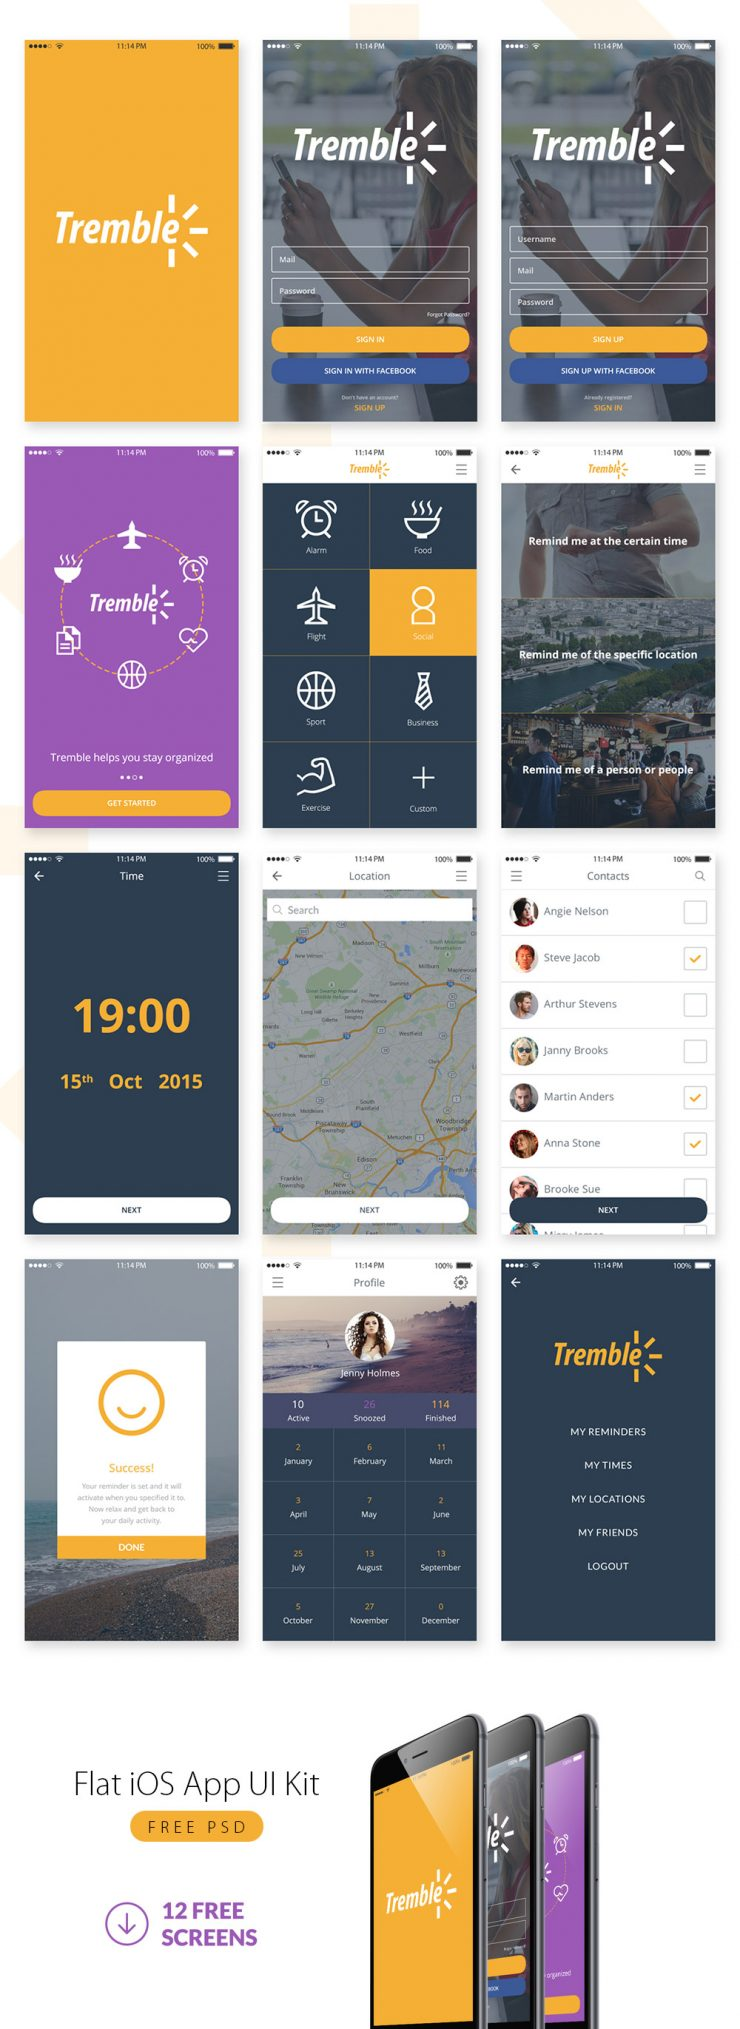 Flat iOS App UI Kit Free PSD yellow, Web Resources, Web Elements, Web Design Elements, Web, UX, User Login, User Interface, unique, ui set, ui kit, UI elements, UI, Stylish, SignUp, signin, Resources, reminder, Quality, purple, psd kit, PSD, Professional, pack, original, new, Modern, mobile website, Mobile App, Login, Iphone, iOS, Interface, GUI Set, GUI kit, GUI, Graphical User Interface, Fresh, Freebie, Free PSD, free app, Free, flat style, Flat Design, Flat, Elements, Download, detailed, Design Resources, Design Elements, Design, Creative, Contacts, Colorful, Clean, awesome, Application, App,